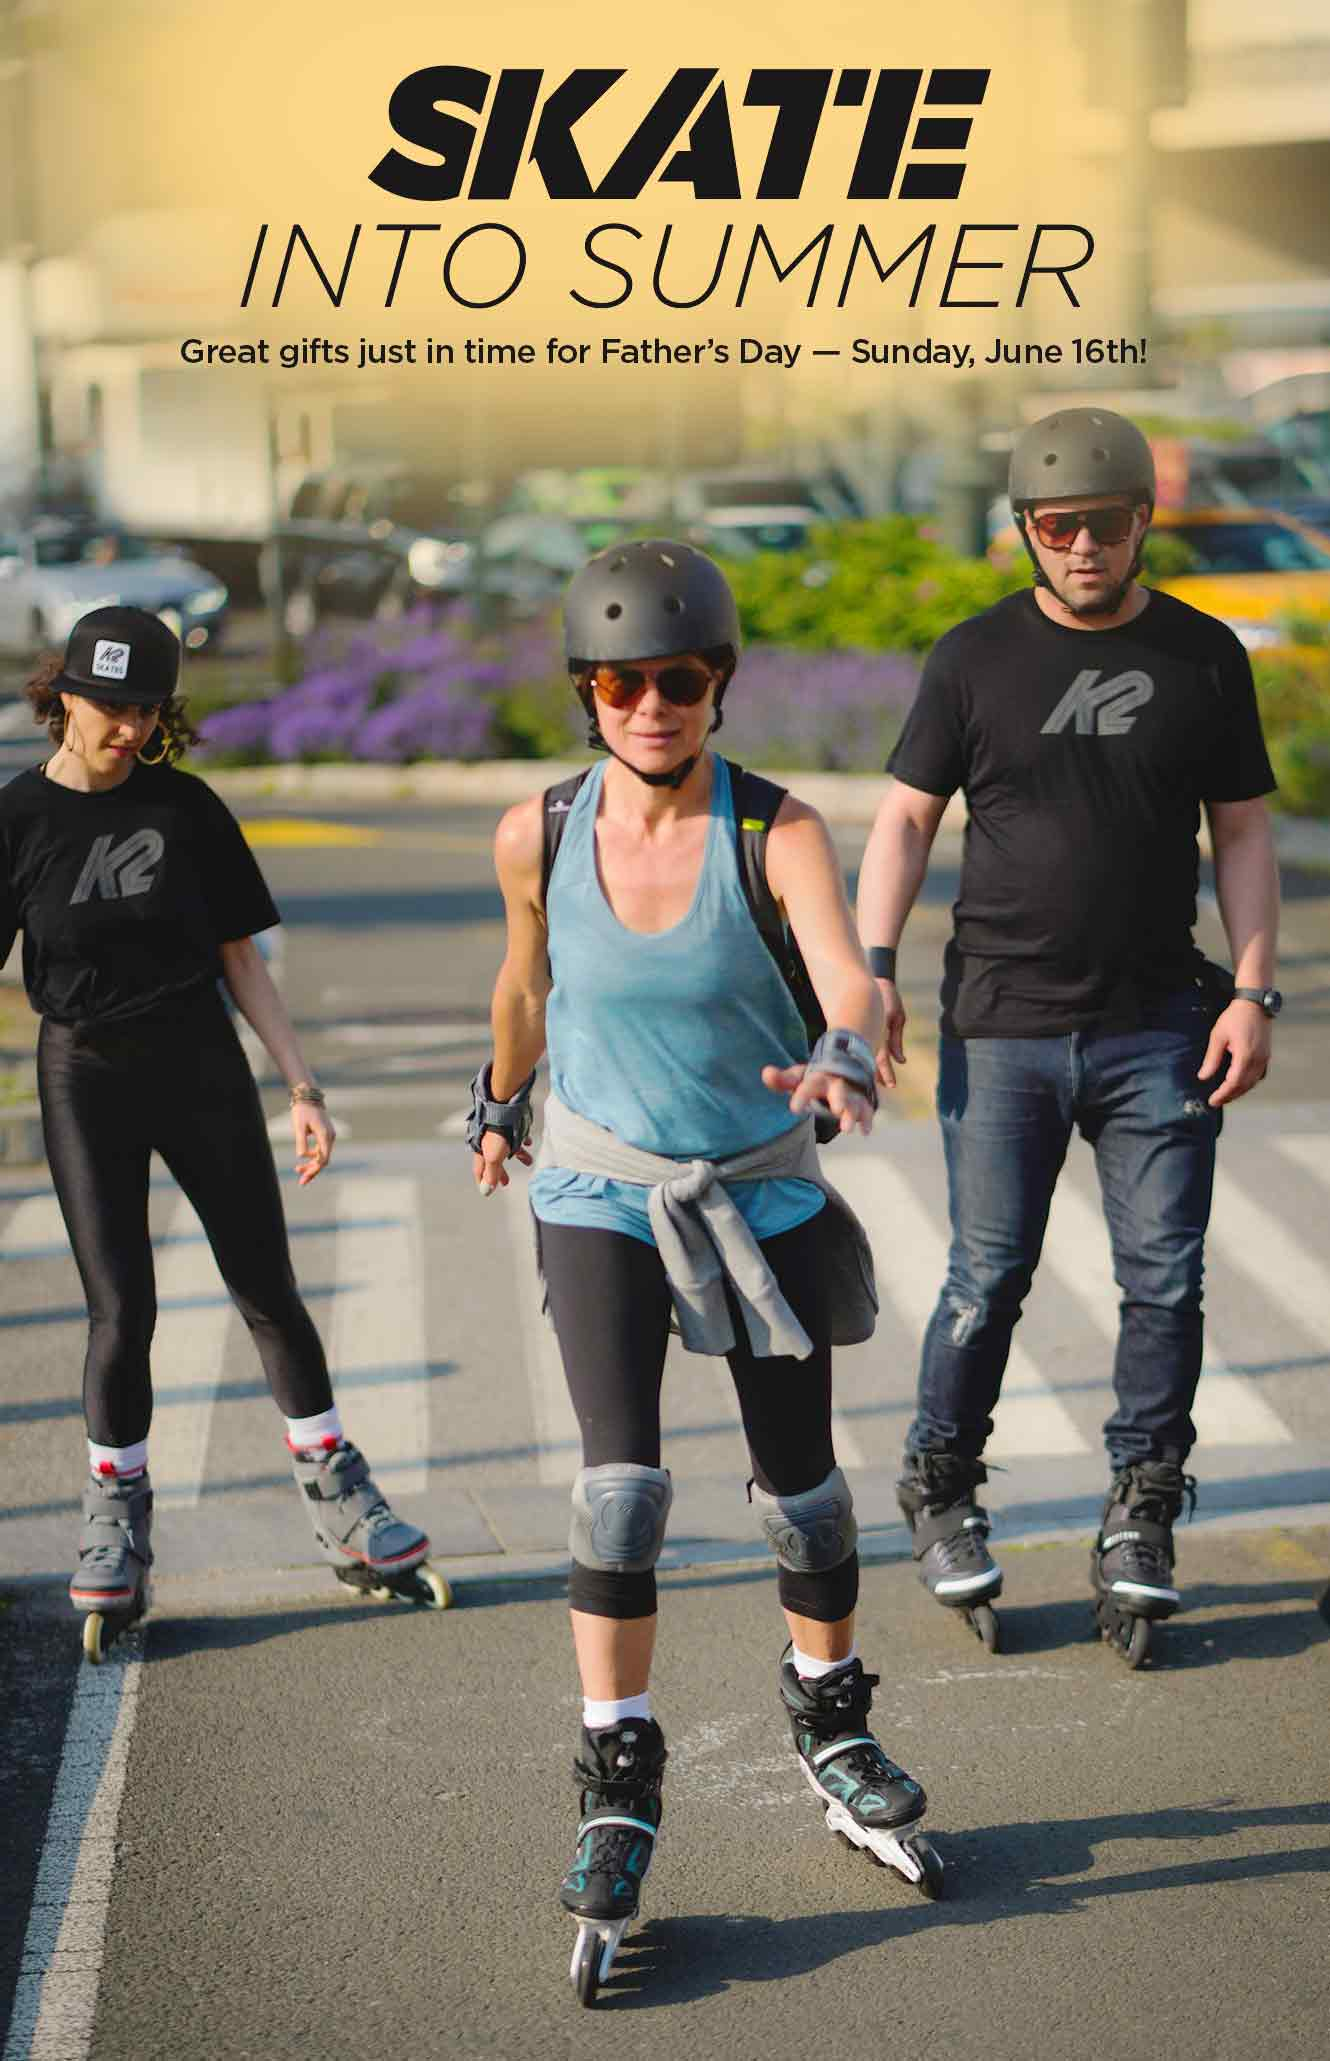 Skate into Summer: Great gifts just in time for Father's Day — Sunday, June 16th!